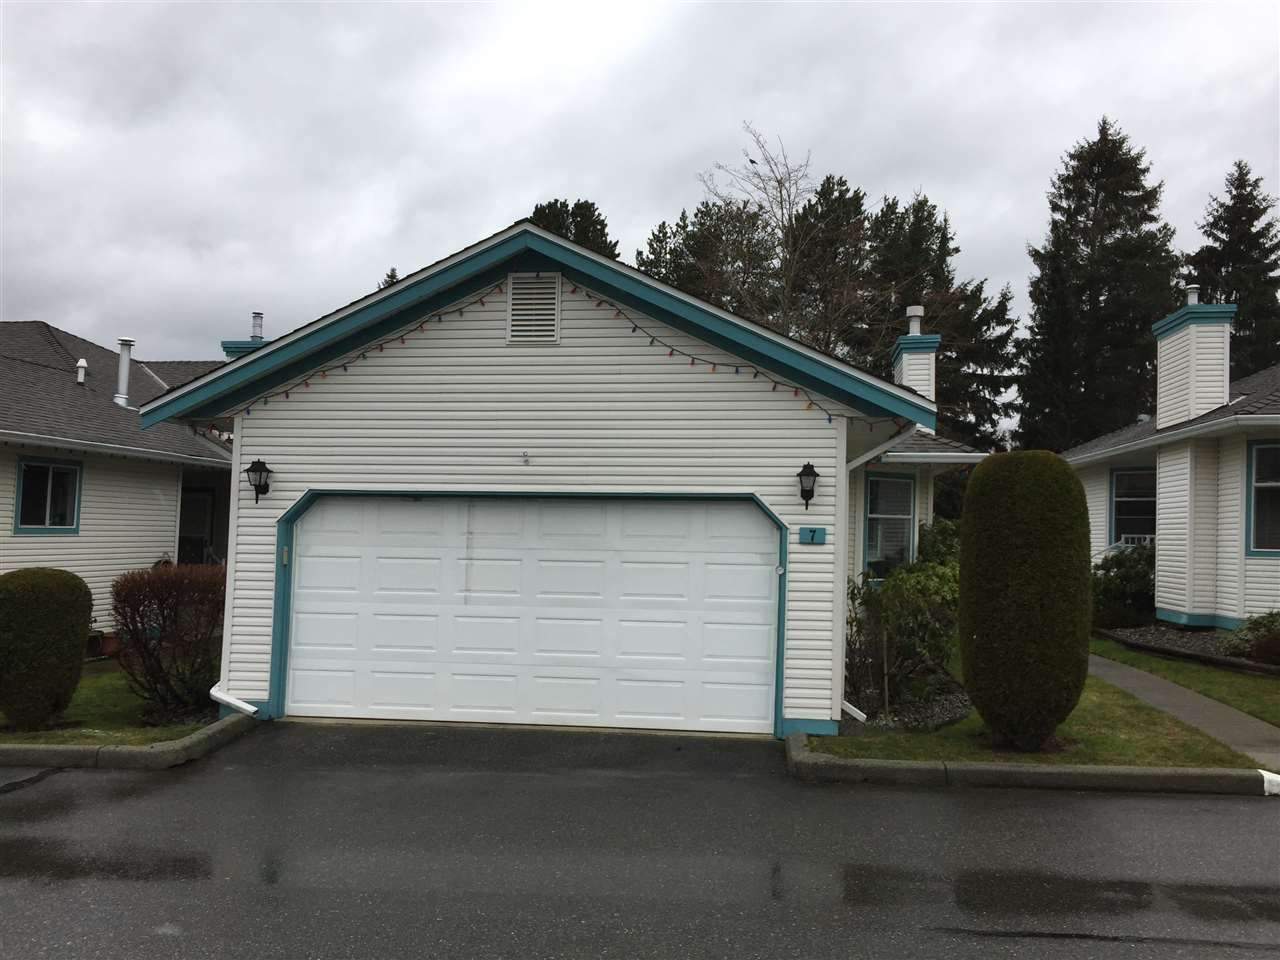 """Main Photo: 7 27435 29A Avenue in Langley: Aldergrove Langley Townhouse for sale in """"CREEKSIDE VILLA"""" : MLS®# R2143521"""